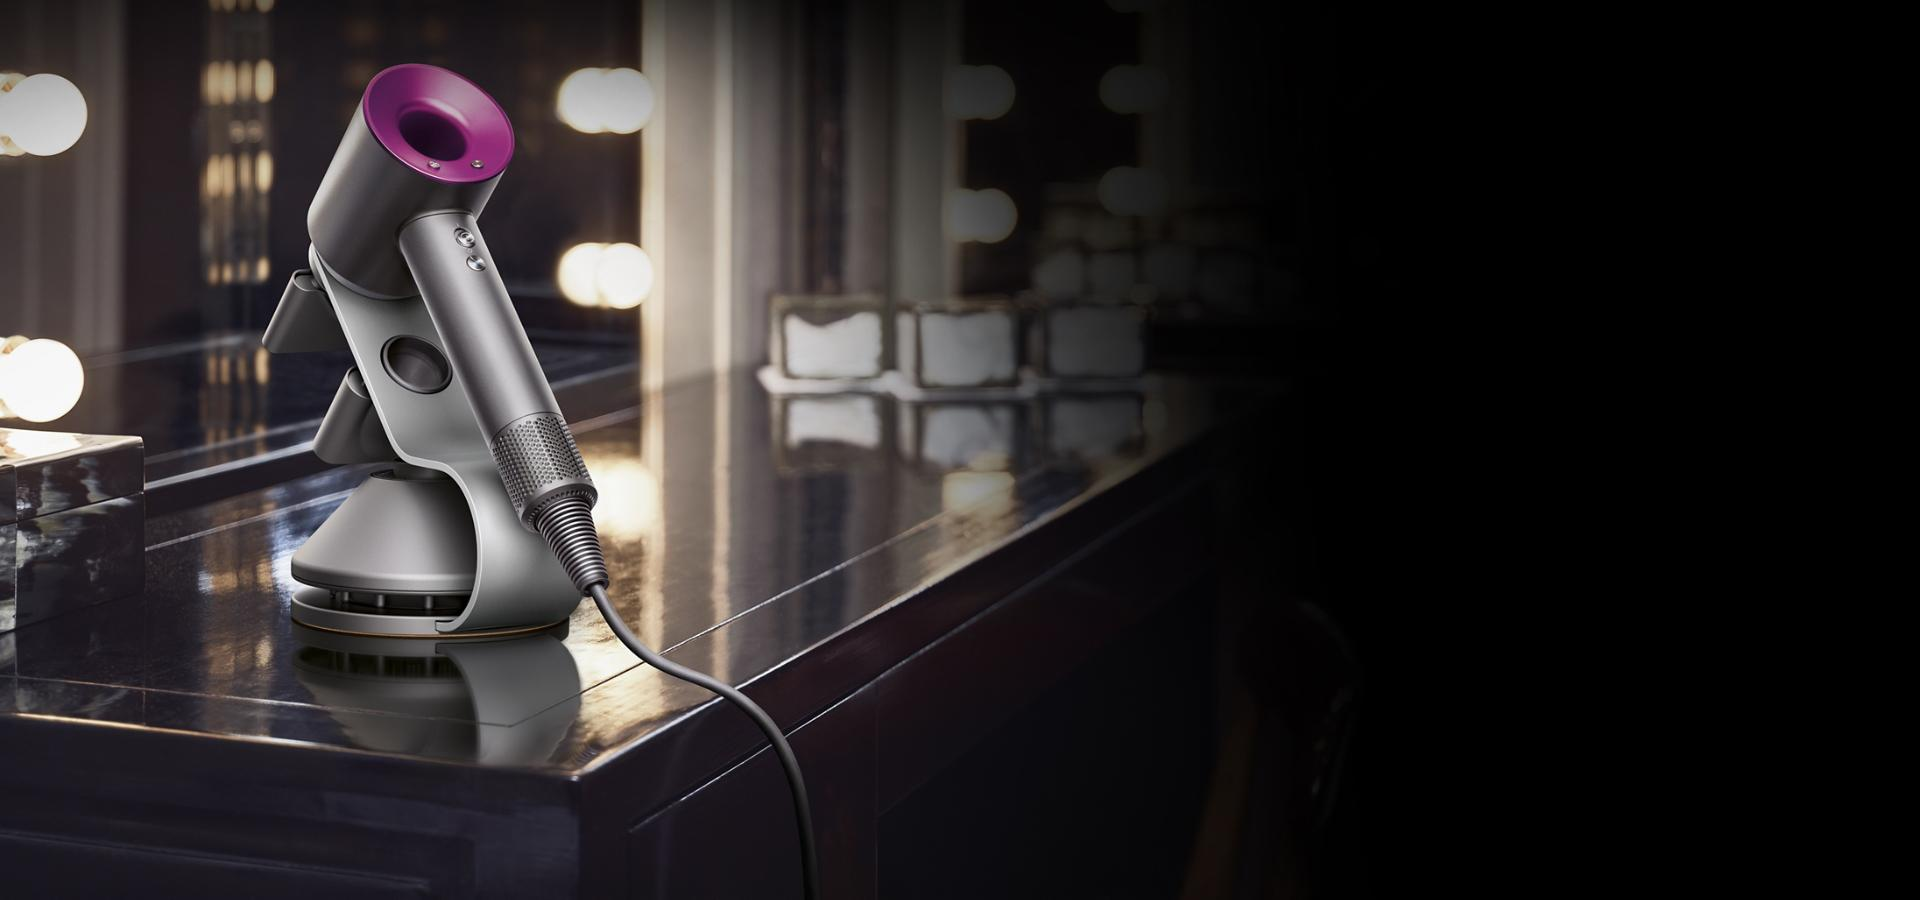 A Dyson Supersonic hair dryer inside a hotel room